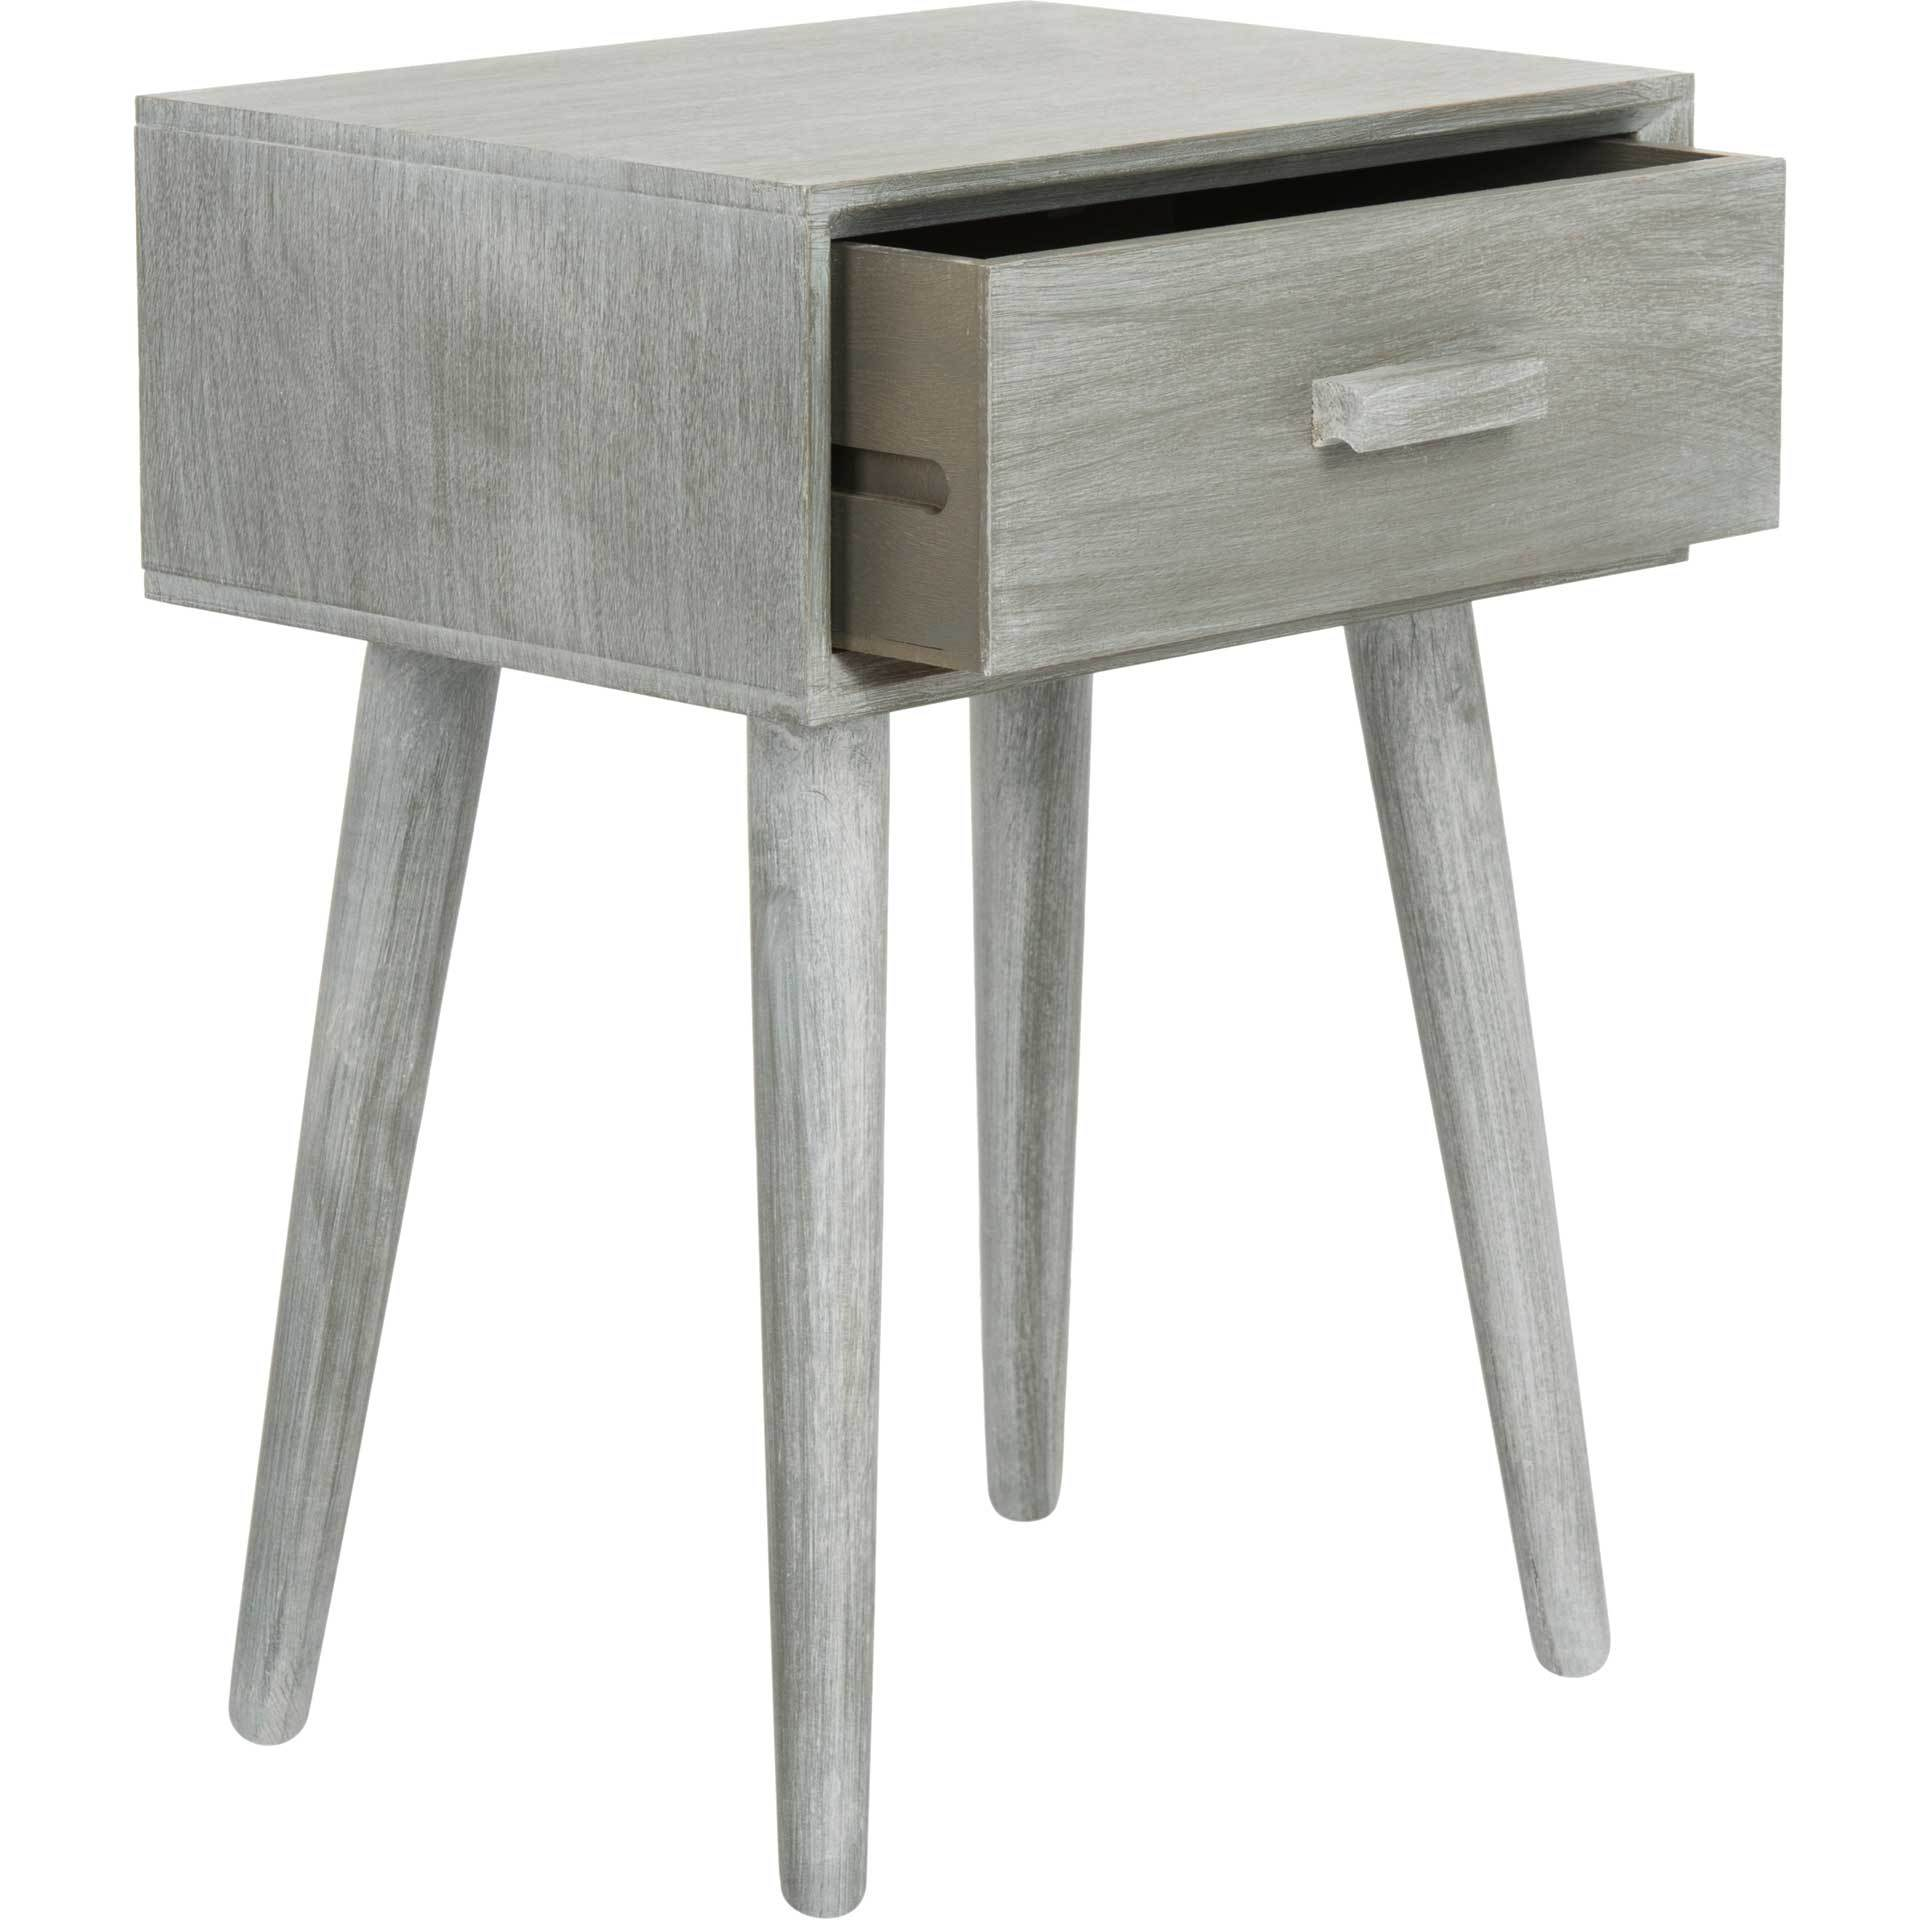 Lylah Accent Table Slate Gray